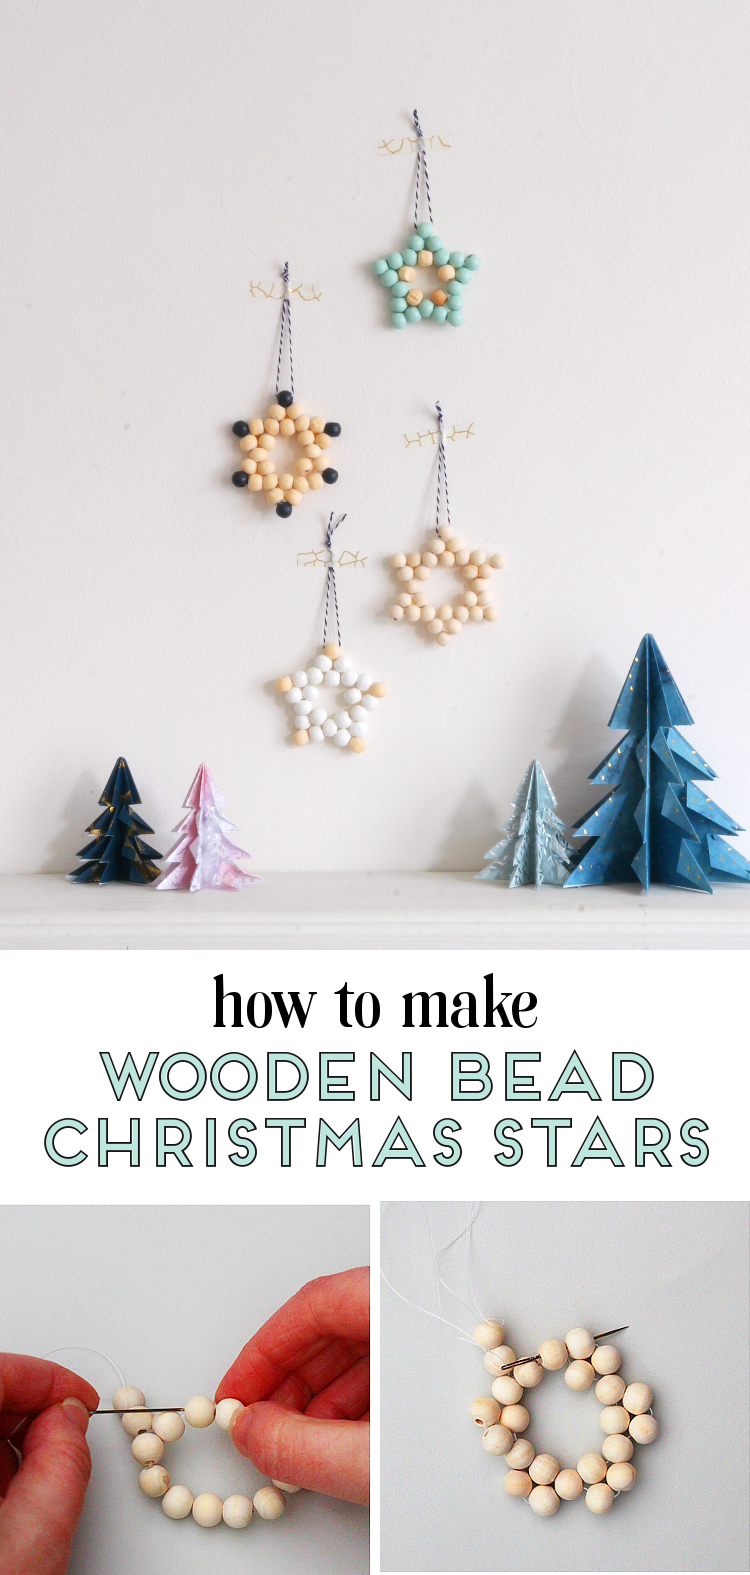 HOW TO MAKE SCANDINAVIAN INSPIRED WOODEN BEAD STAR CHRISTMAS DECORATIONS #chrIstmas #christmascrafts #crafts #holidaycrafts #woodenstar #star #woodenbeadtstars #diy #gatheringbeauty